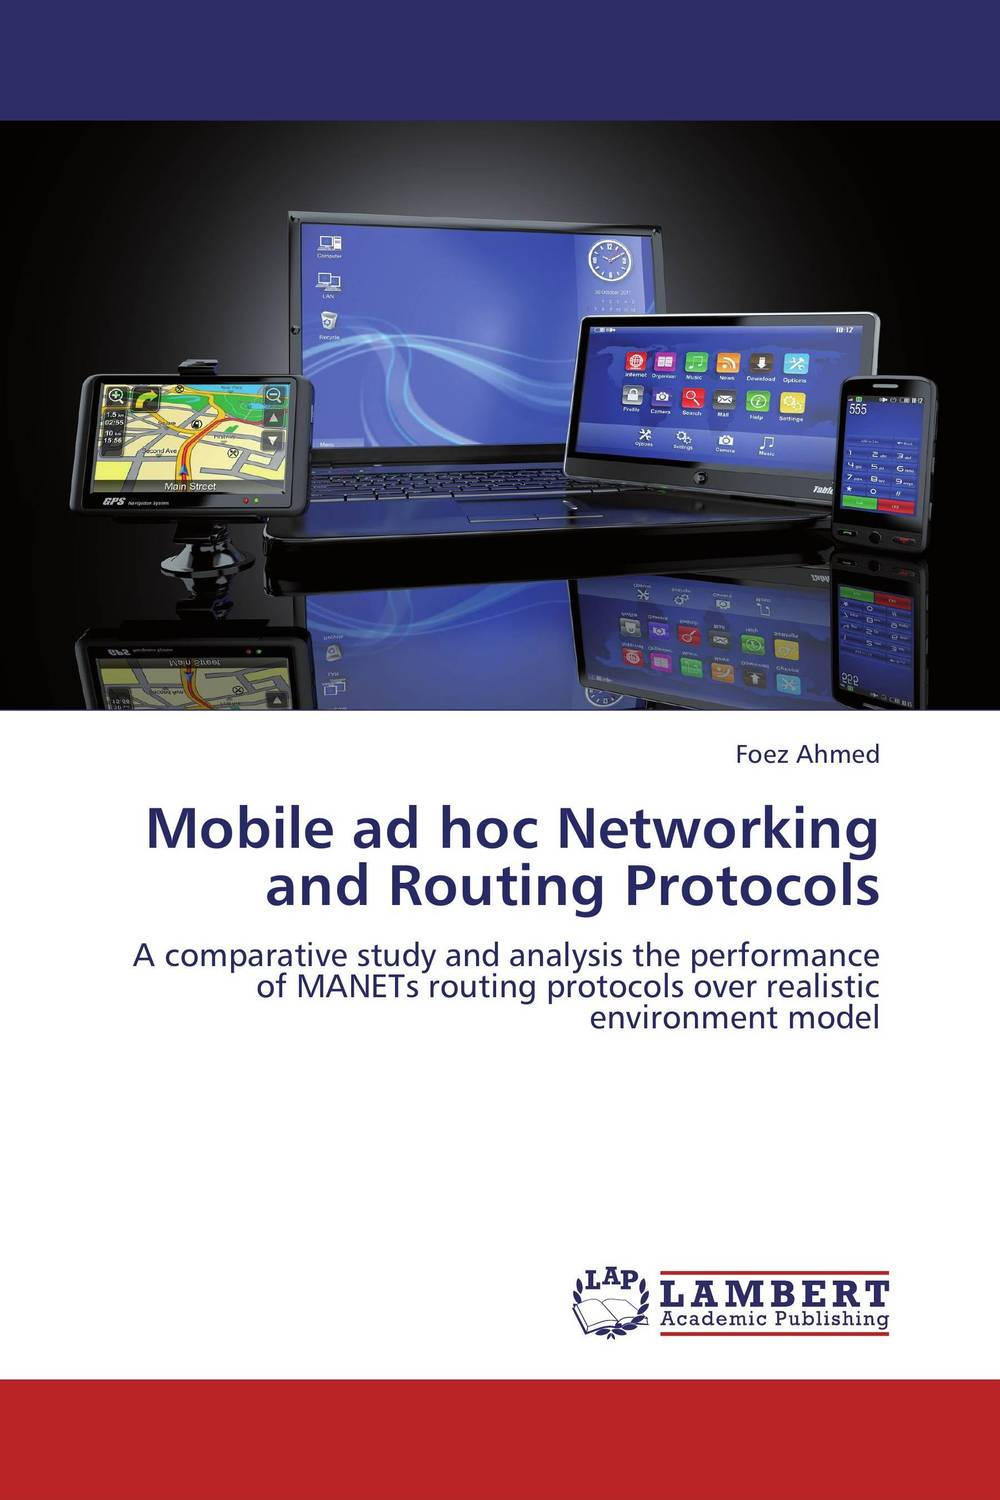 Mobile ad hoc Networking and Routing Protocols zhili sun satellite networking principles and protocols